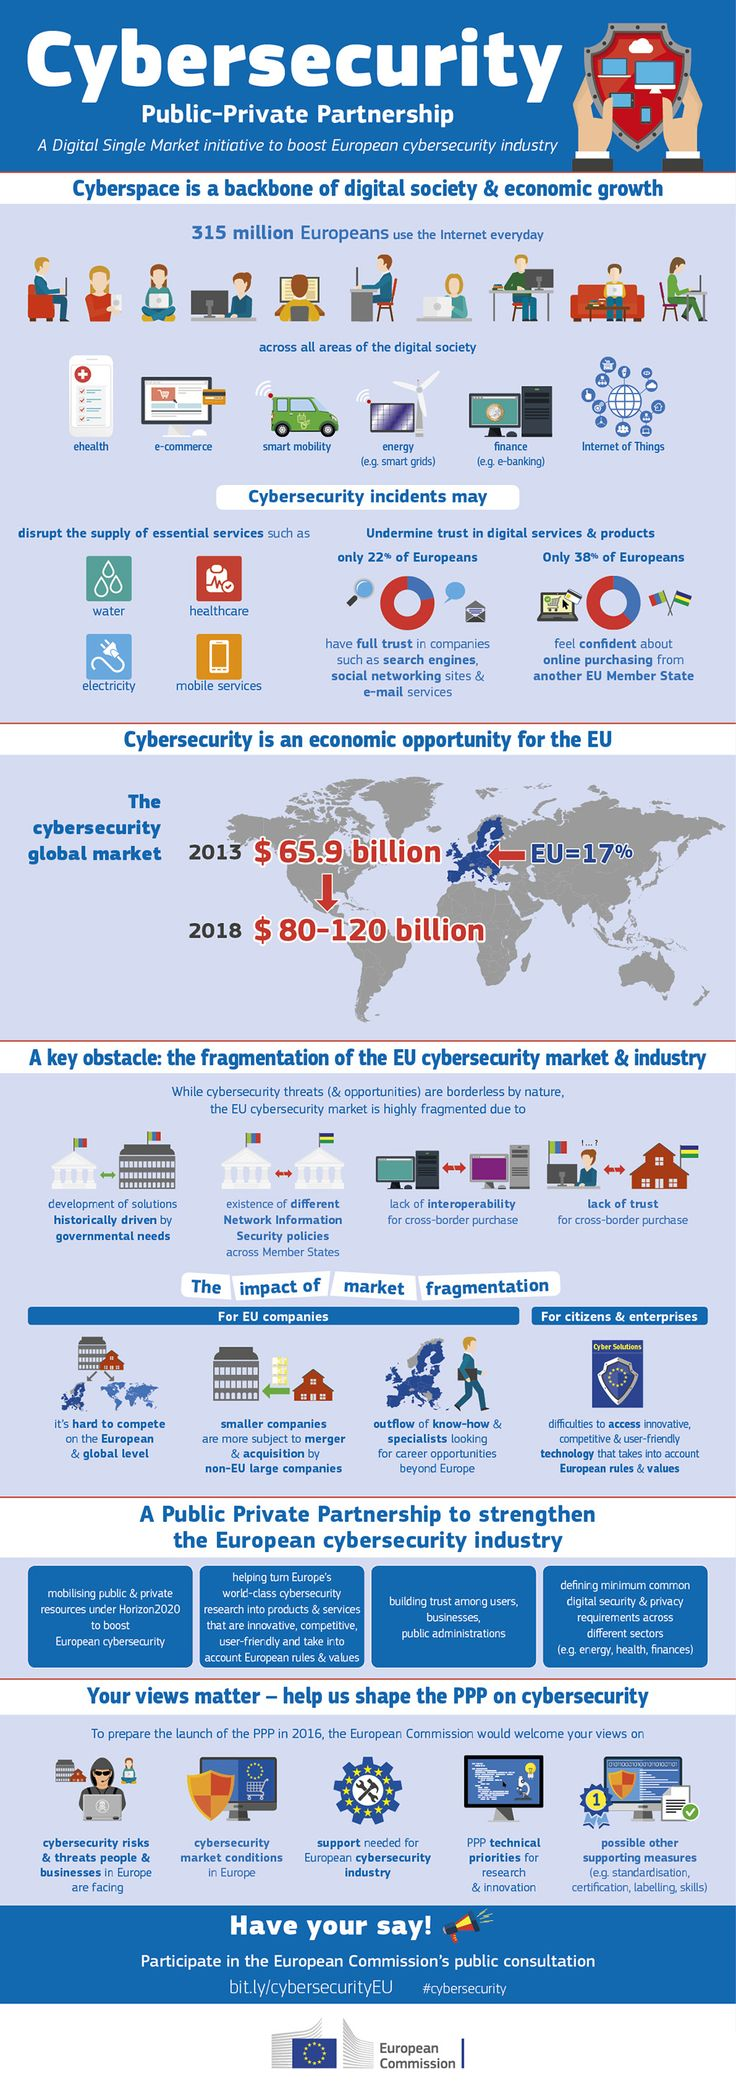 Only 22% of Europeans have full trust in search engines and just 38% of Europeans feel confident about online purchases from another EU country. We want to boost #cybersecurity in Europe & we need you to help us. Share your ideas & contribute to our new consultation http://bit.ly/1OIRAt9